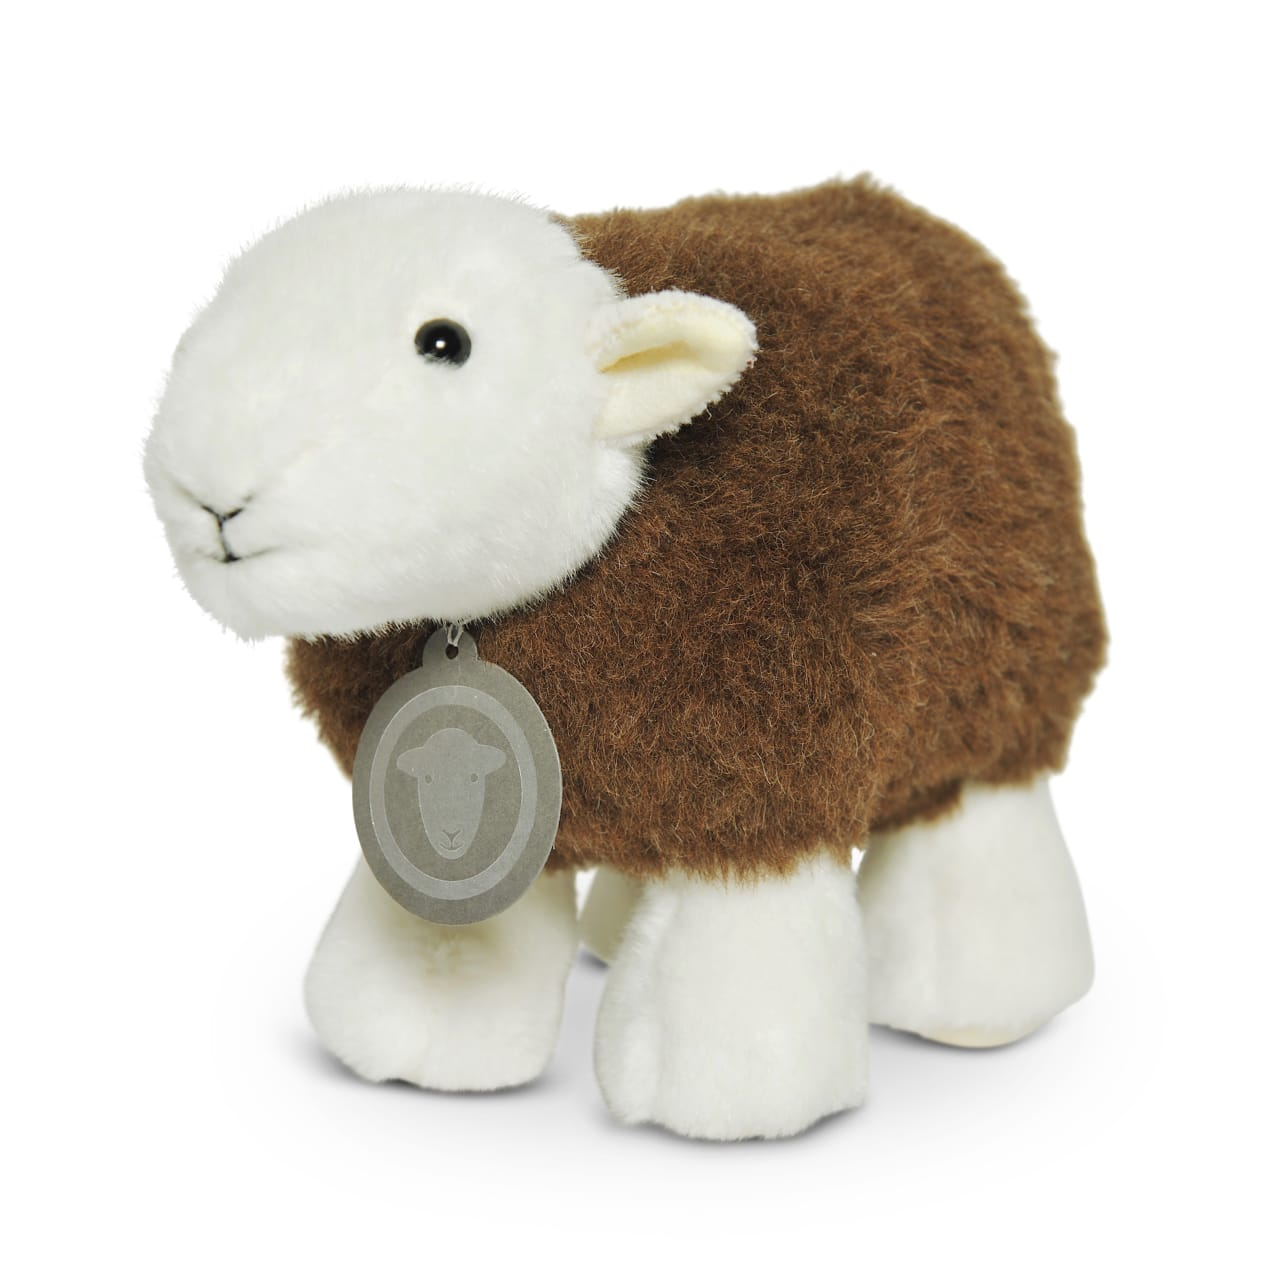 Launch photo of the My Herdy Shearling